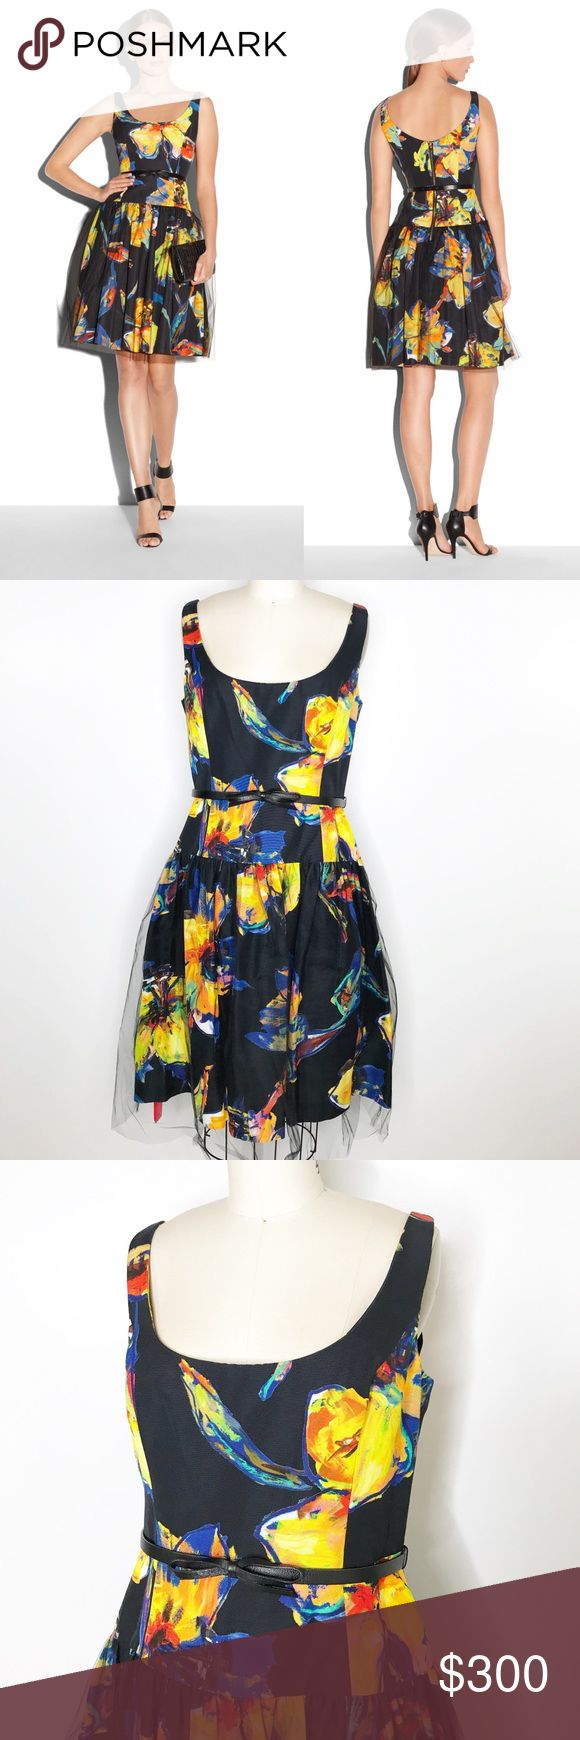 "⭐️ NEW ARRIVAL Milly Pop Art Floral Cocktail Dress This beautiful cocktail dress is brand new with tags. A chic drop waist is accented with a bow belt and the flared skirt is covered in black tulle. There are bra strap holders on the straps and the inside is fully lined.   Bust 38"", waist 30-31"" and 37 length with the tulle going to 40"".   Belt is marked 14 in the back but seems to fit the dress fine.   013018 Milly Dresses"